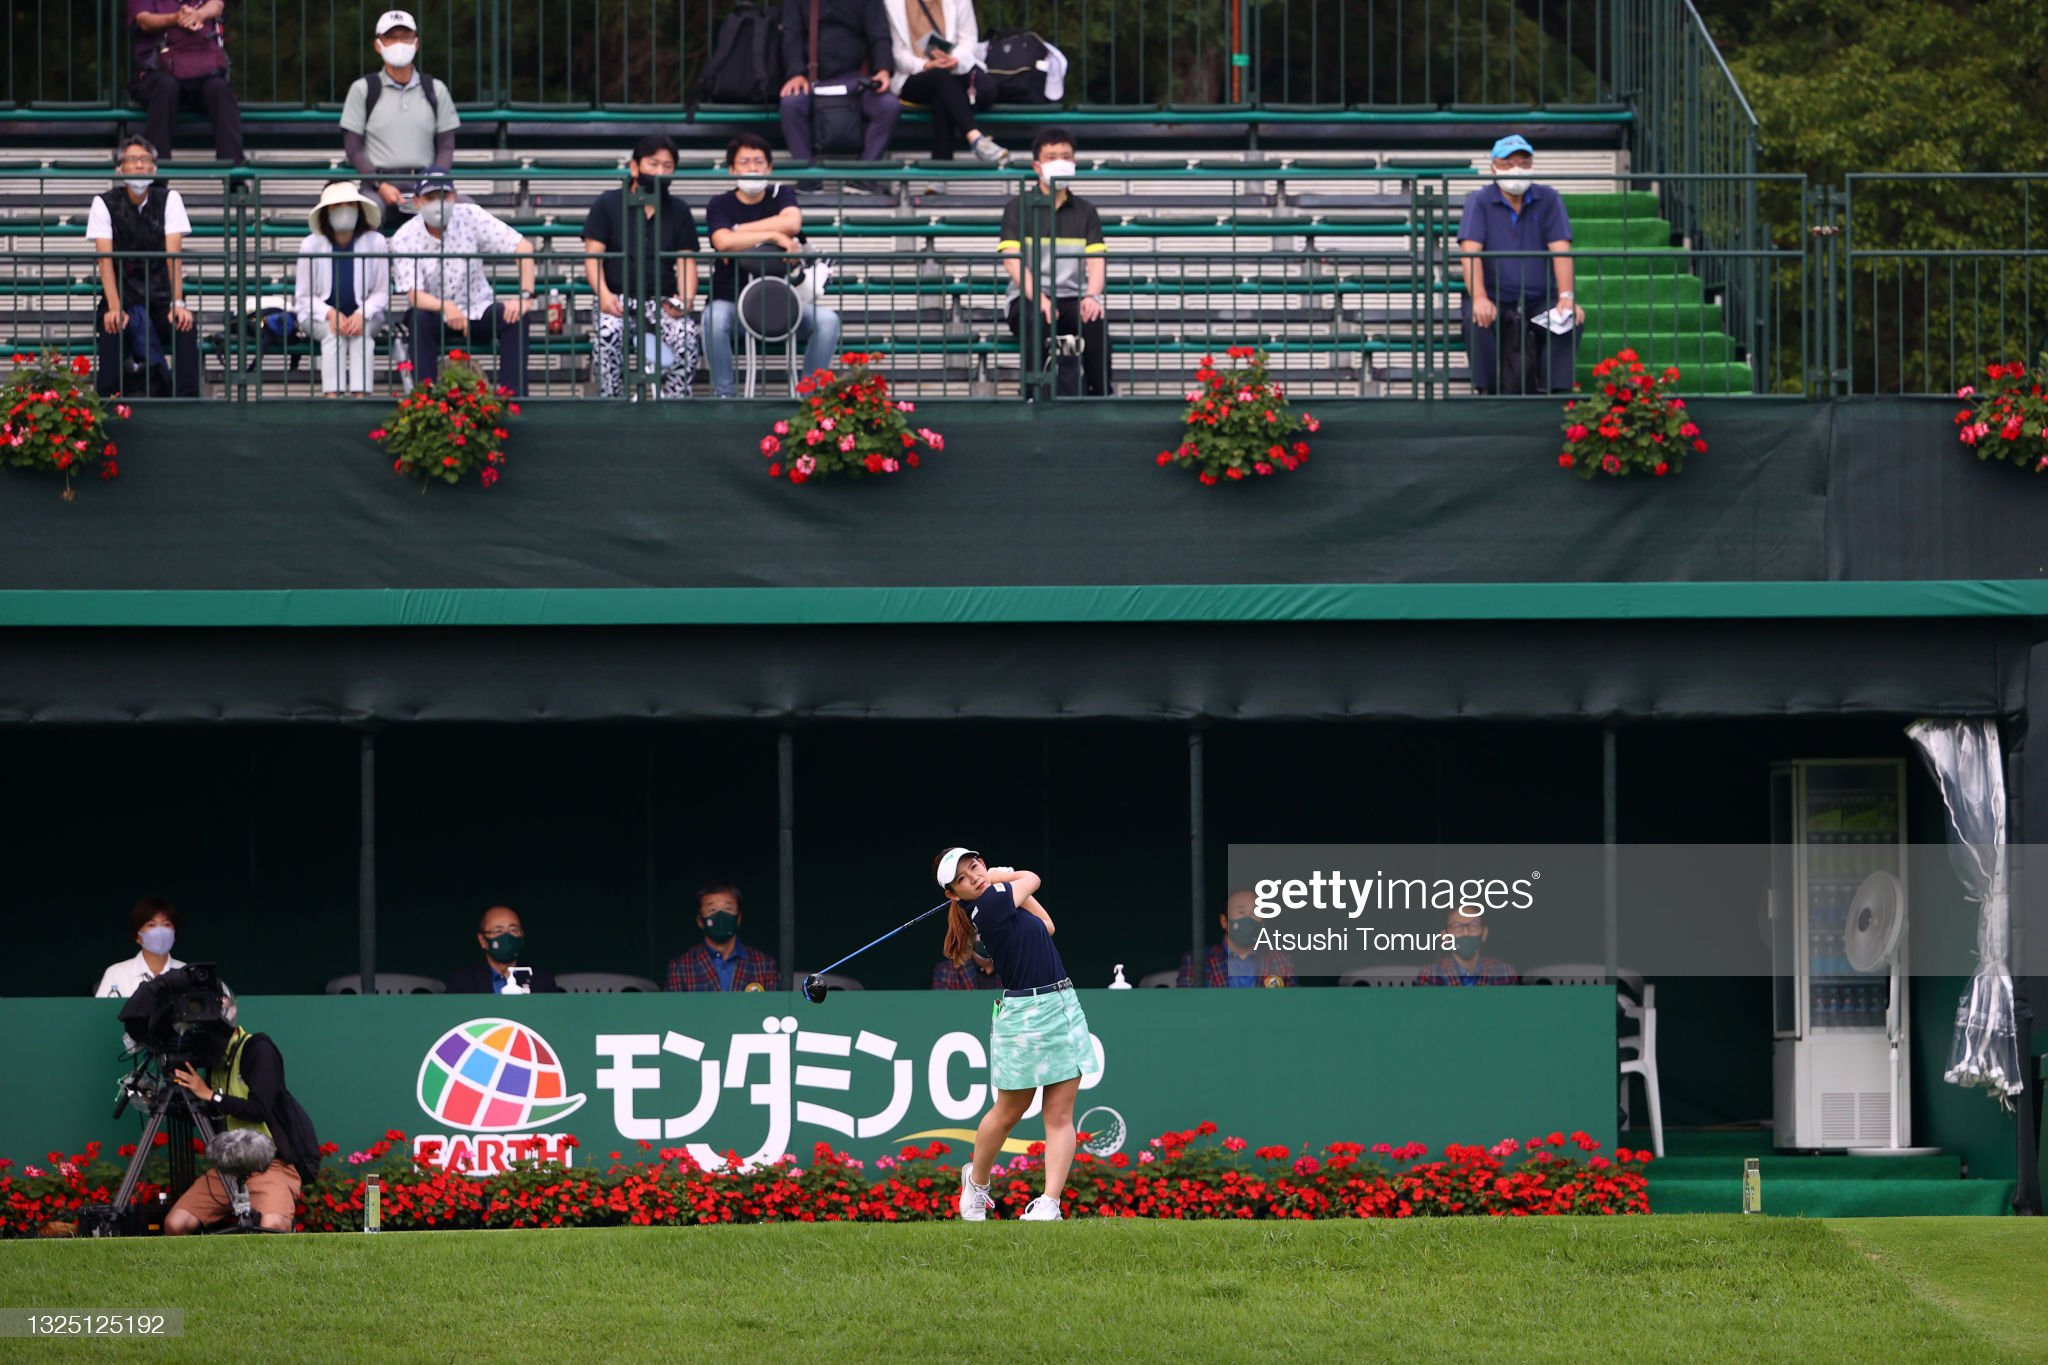 https://media.gettyimages.com/photos/hikaru-yoshimoto-of-japan-hits-her-tee-shot-on-the-1st-hole-during-picture-id1325125192?s=2048x2048